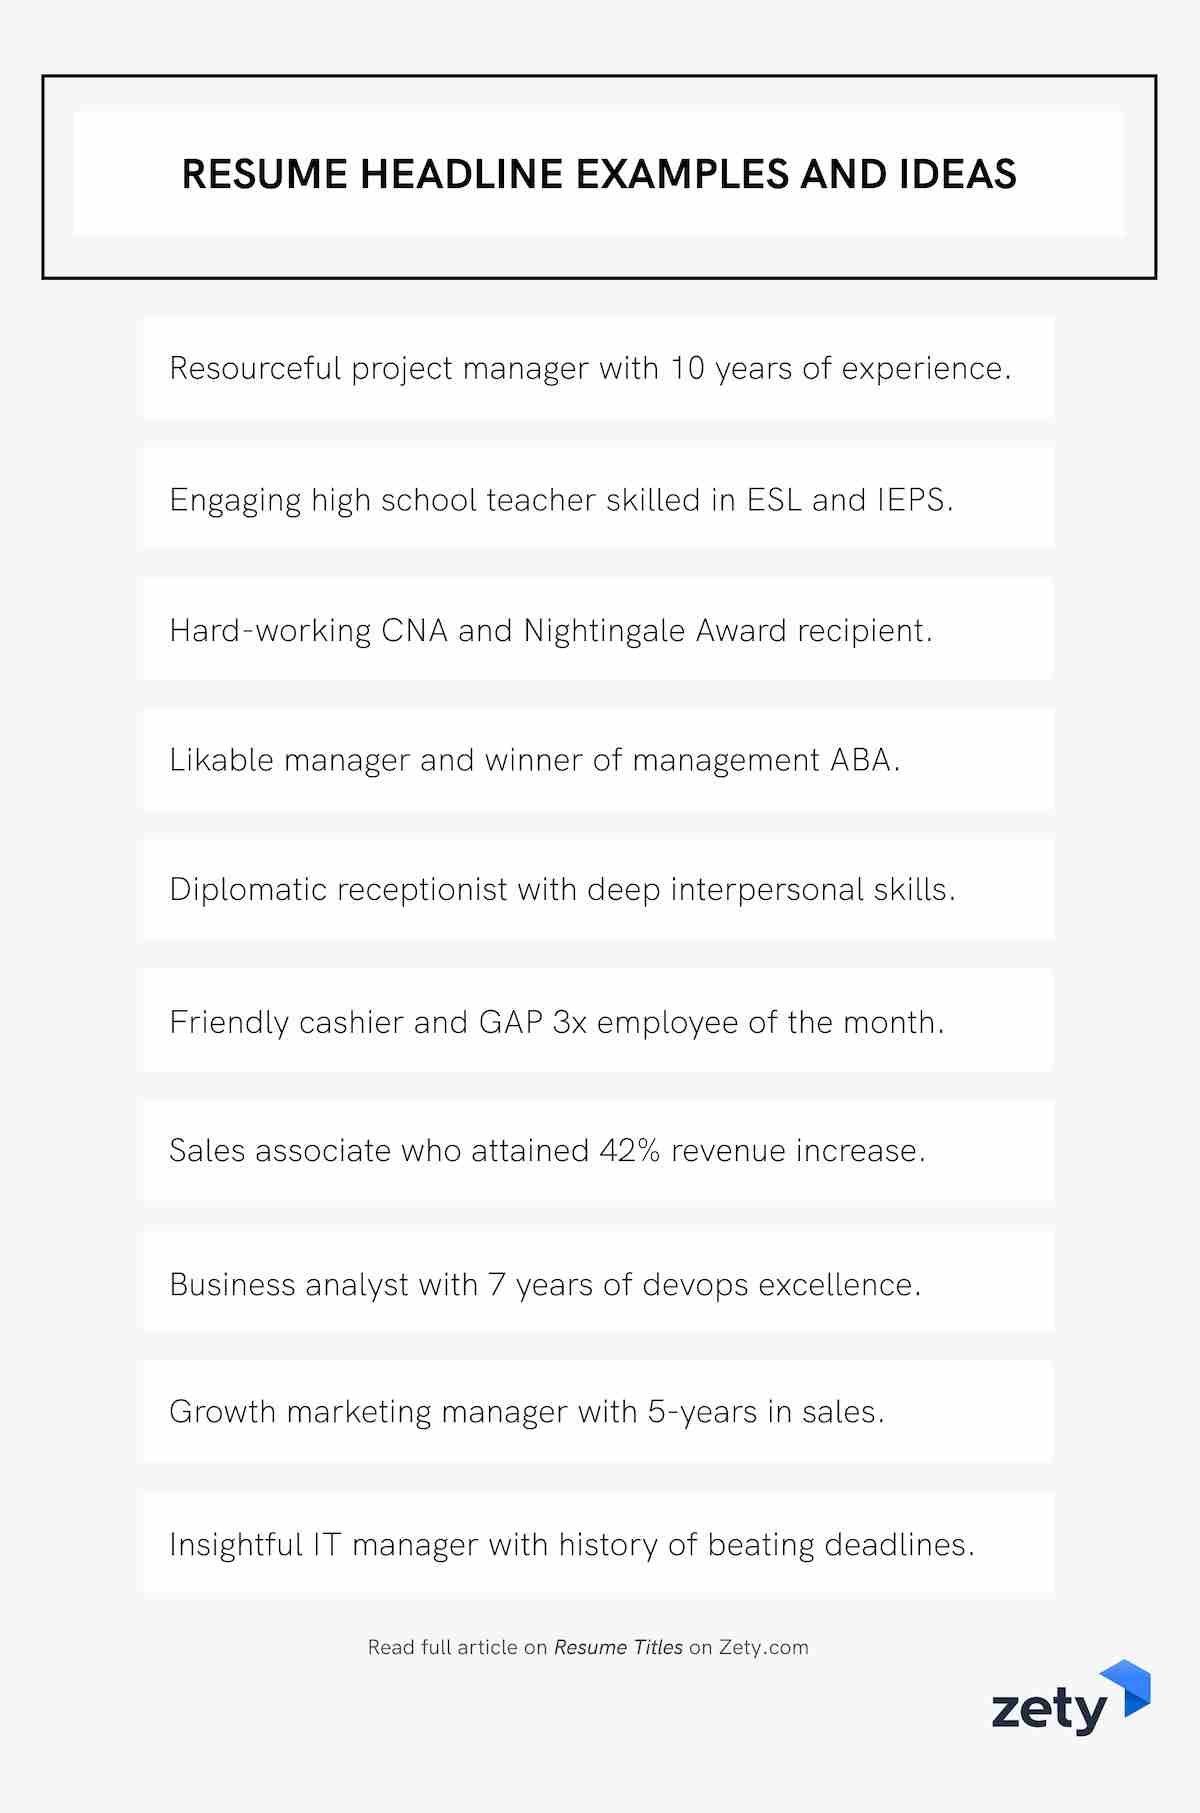 resume title examples good headline for any tagline and ideas best names monster entry Resume Resume Headline Tagline